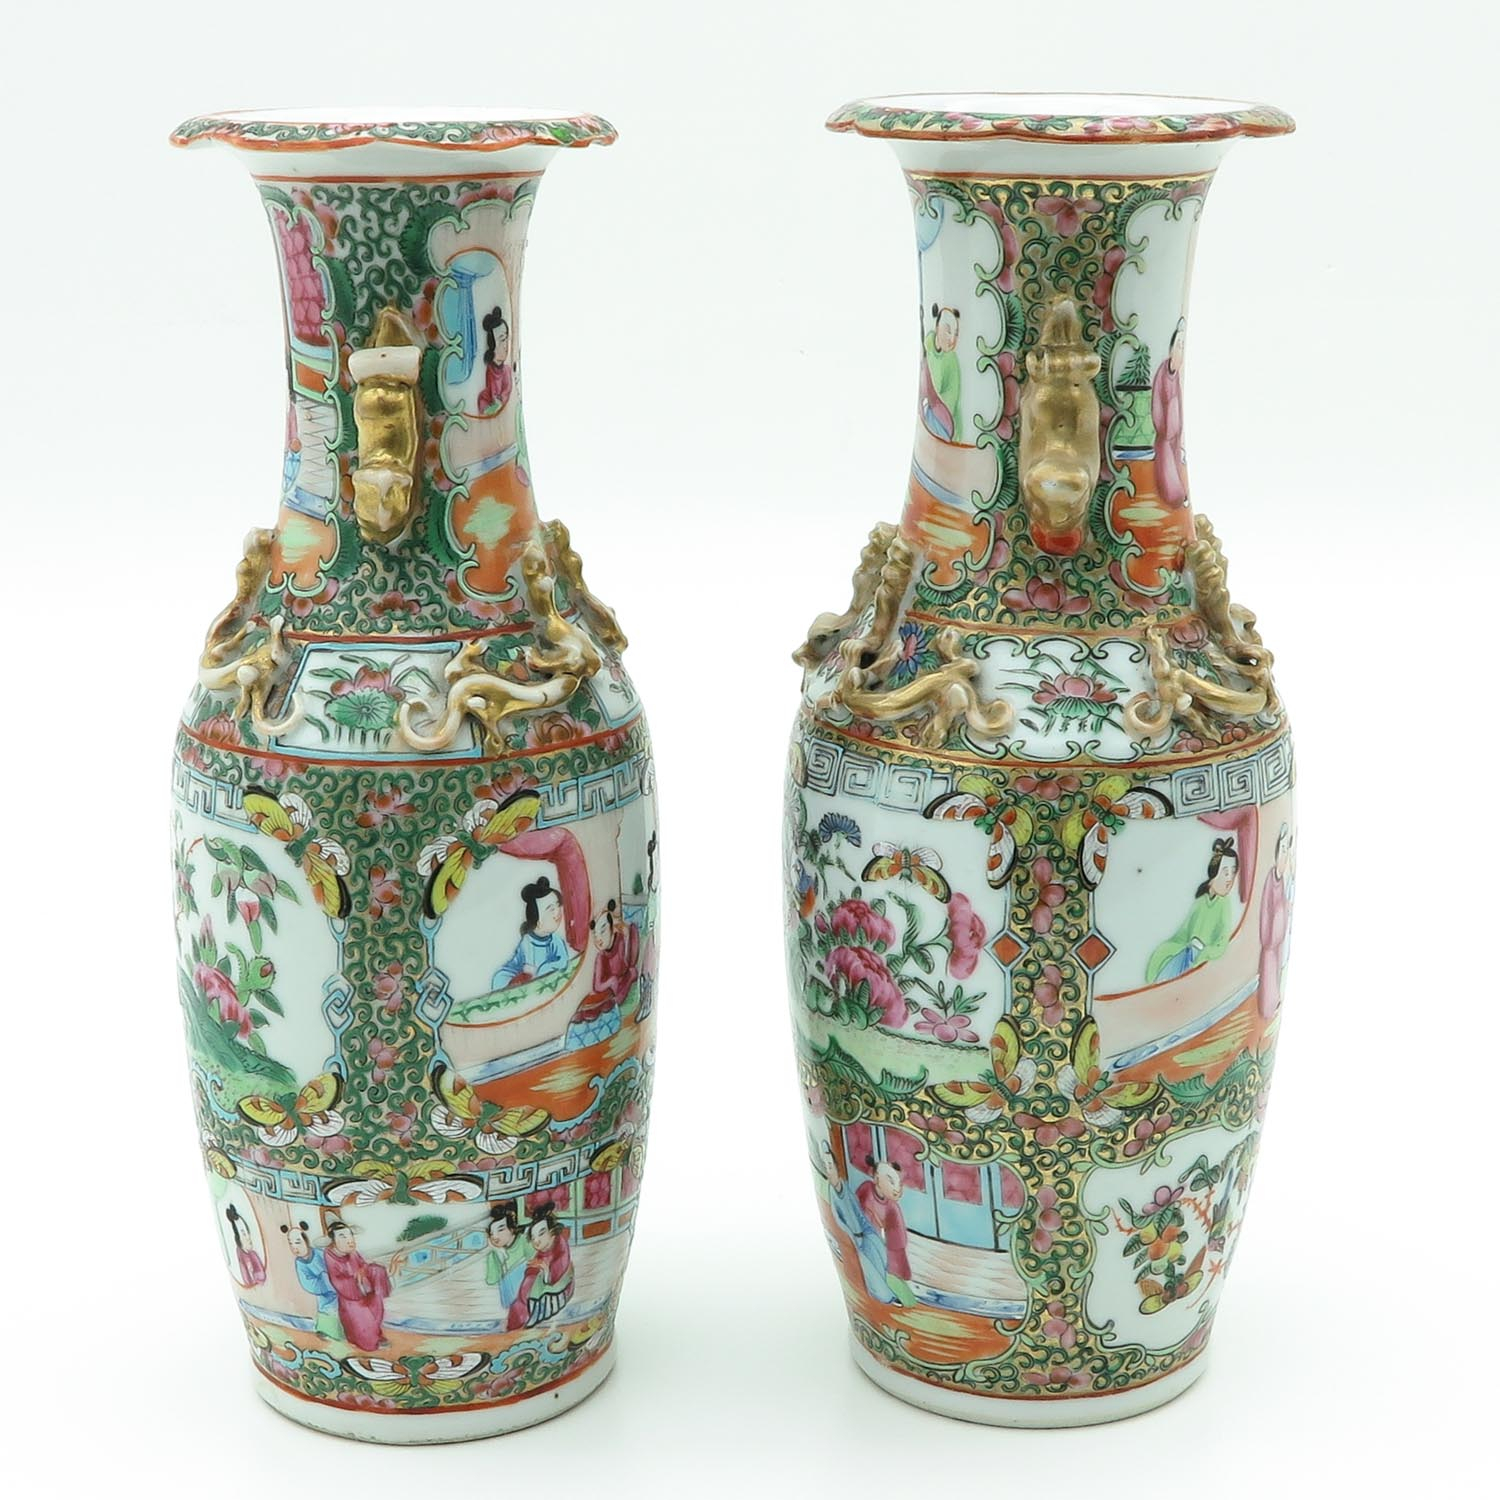 Lot 7036 - A Pair of Cantonese Vases